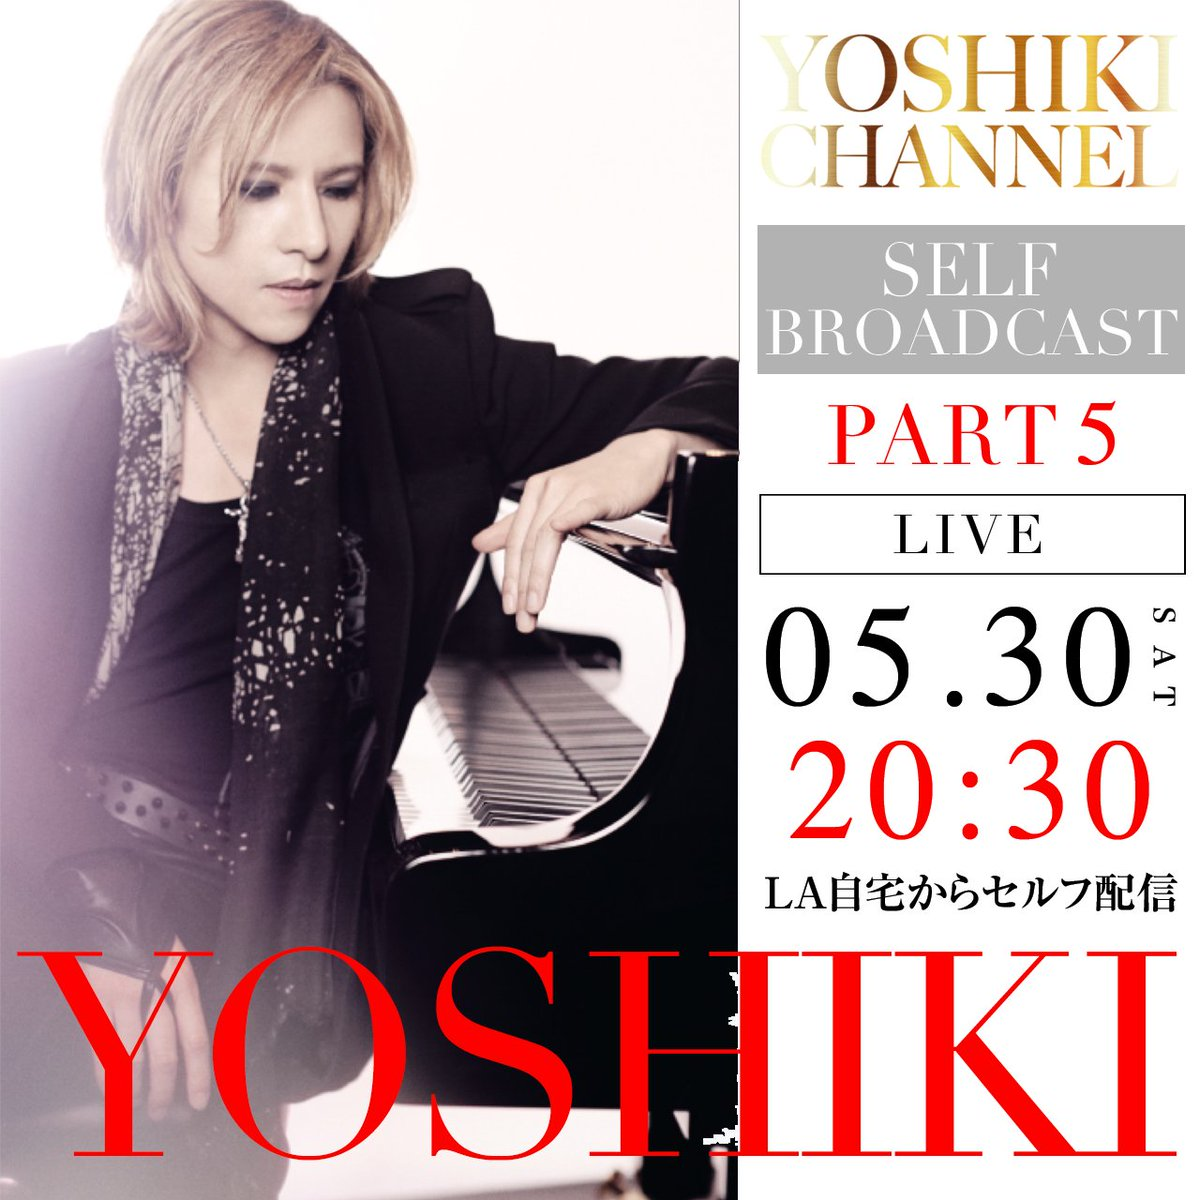 #質問募集 #AskYoshiki 【今晩 Tonight 20:30~ JST Live! 】#YOSHIKI #LA 自宅からセルフ配信 PART5質問はインスタorブロマガにて募集中Post your #AskYoshiki questions on  @YoshikiOfficial's #instagram  & Intel→